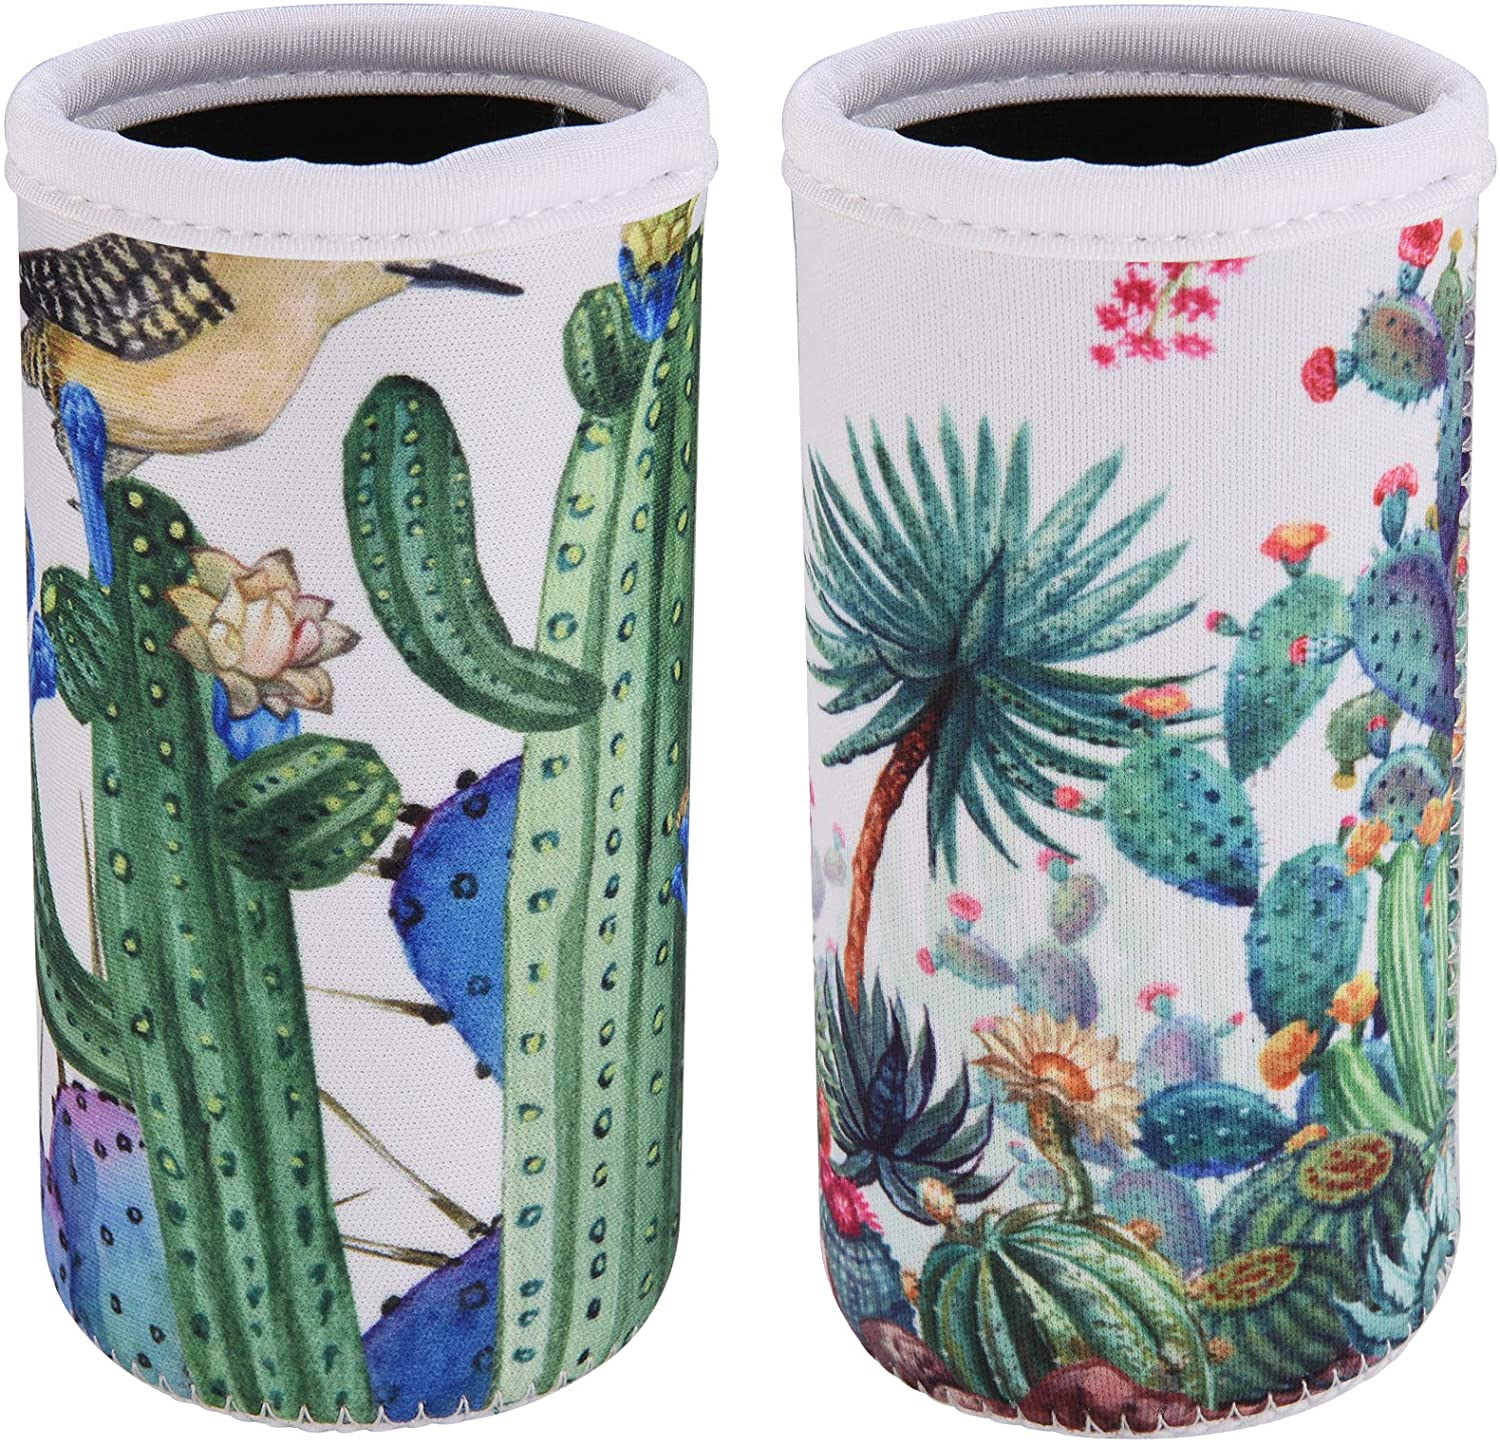 CM Soft Neoprene Slim Can Sleeves Insulators Slim Can Covers for 12 Fluid Ounce Energy Drink & Beer Cans (Cactus Pattern (2 Pcs))